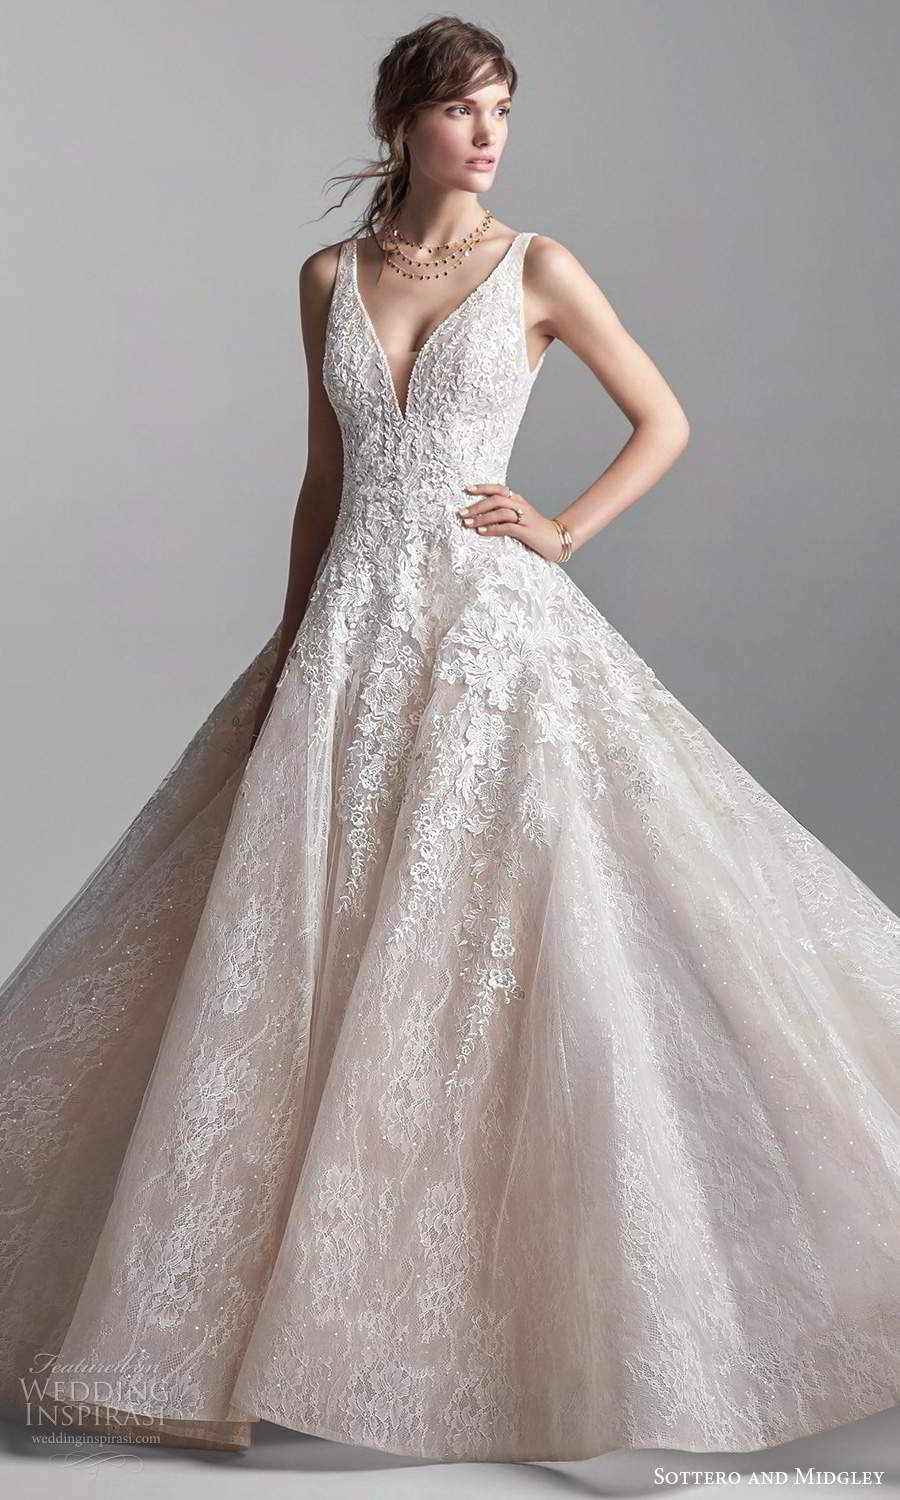 sottero midgley fall 2020 bridal sleeveless thick straps plunging v neckline fully embellished fit flare a line ball gown wedding dress blush chapel train (6) mv